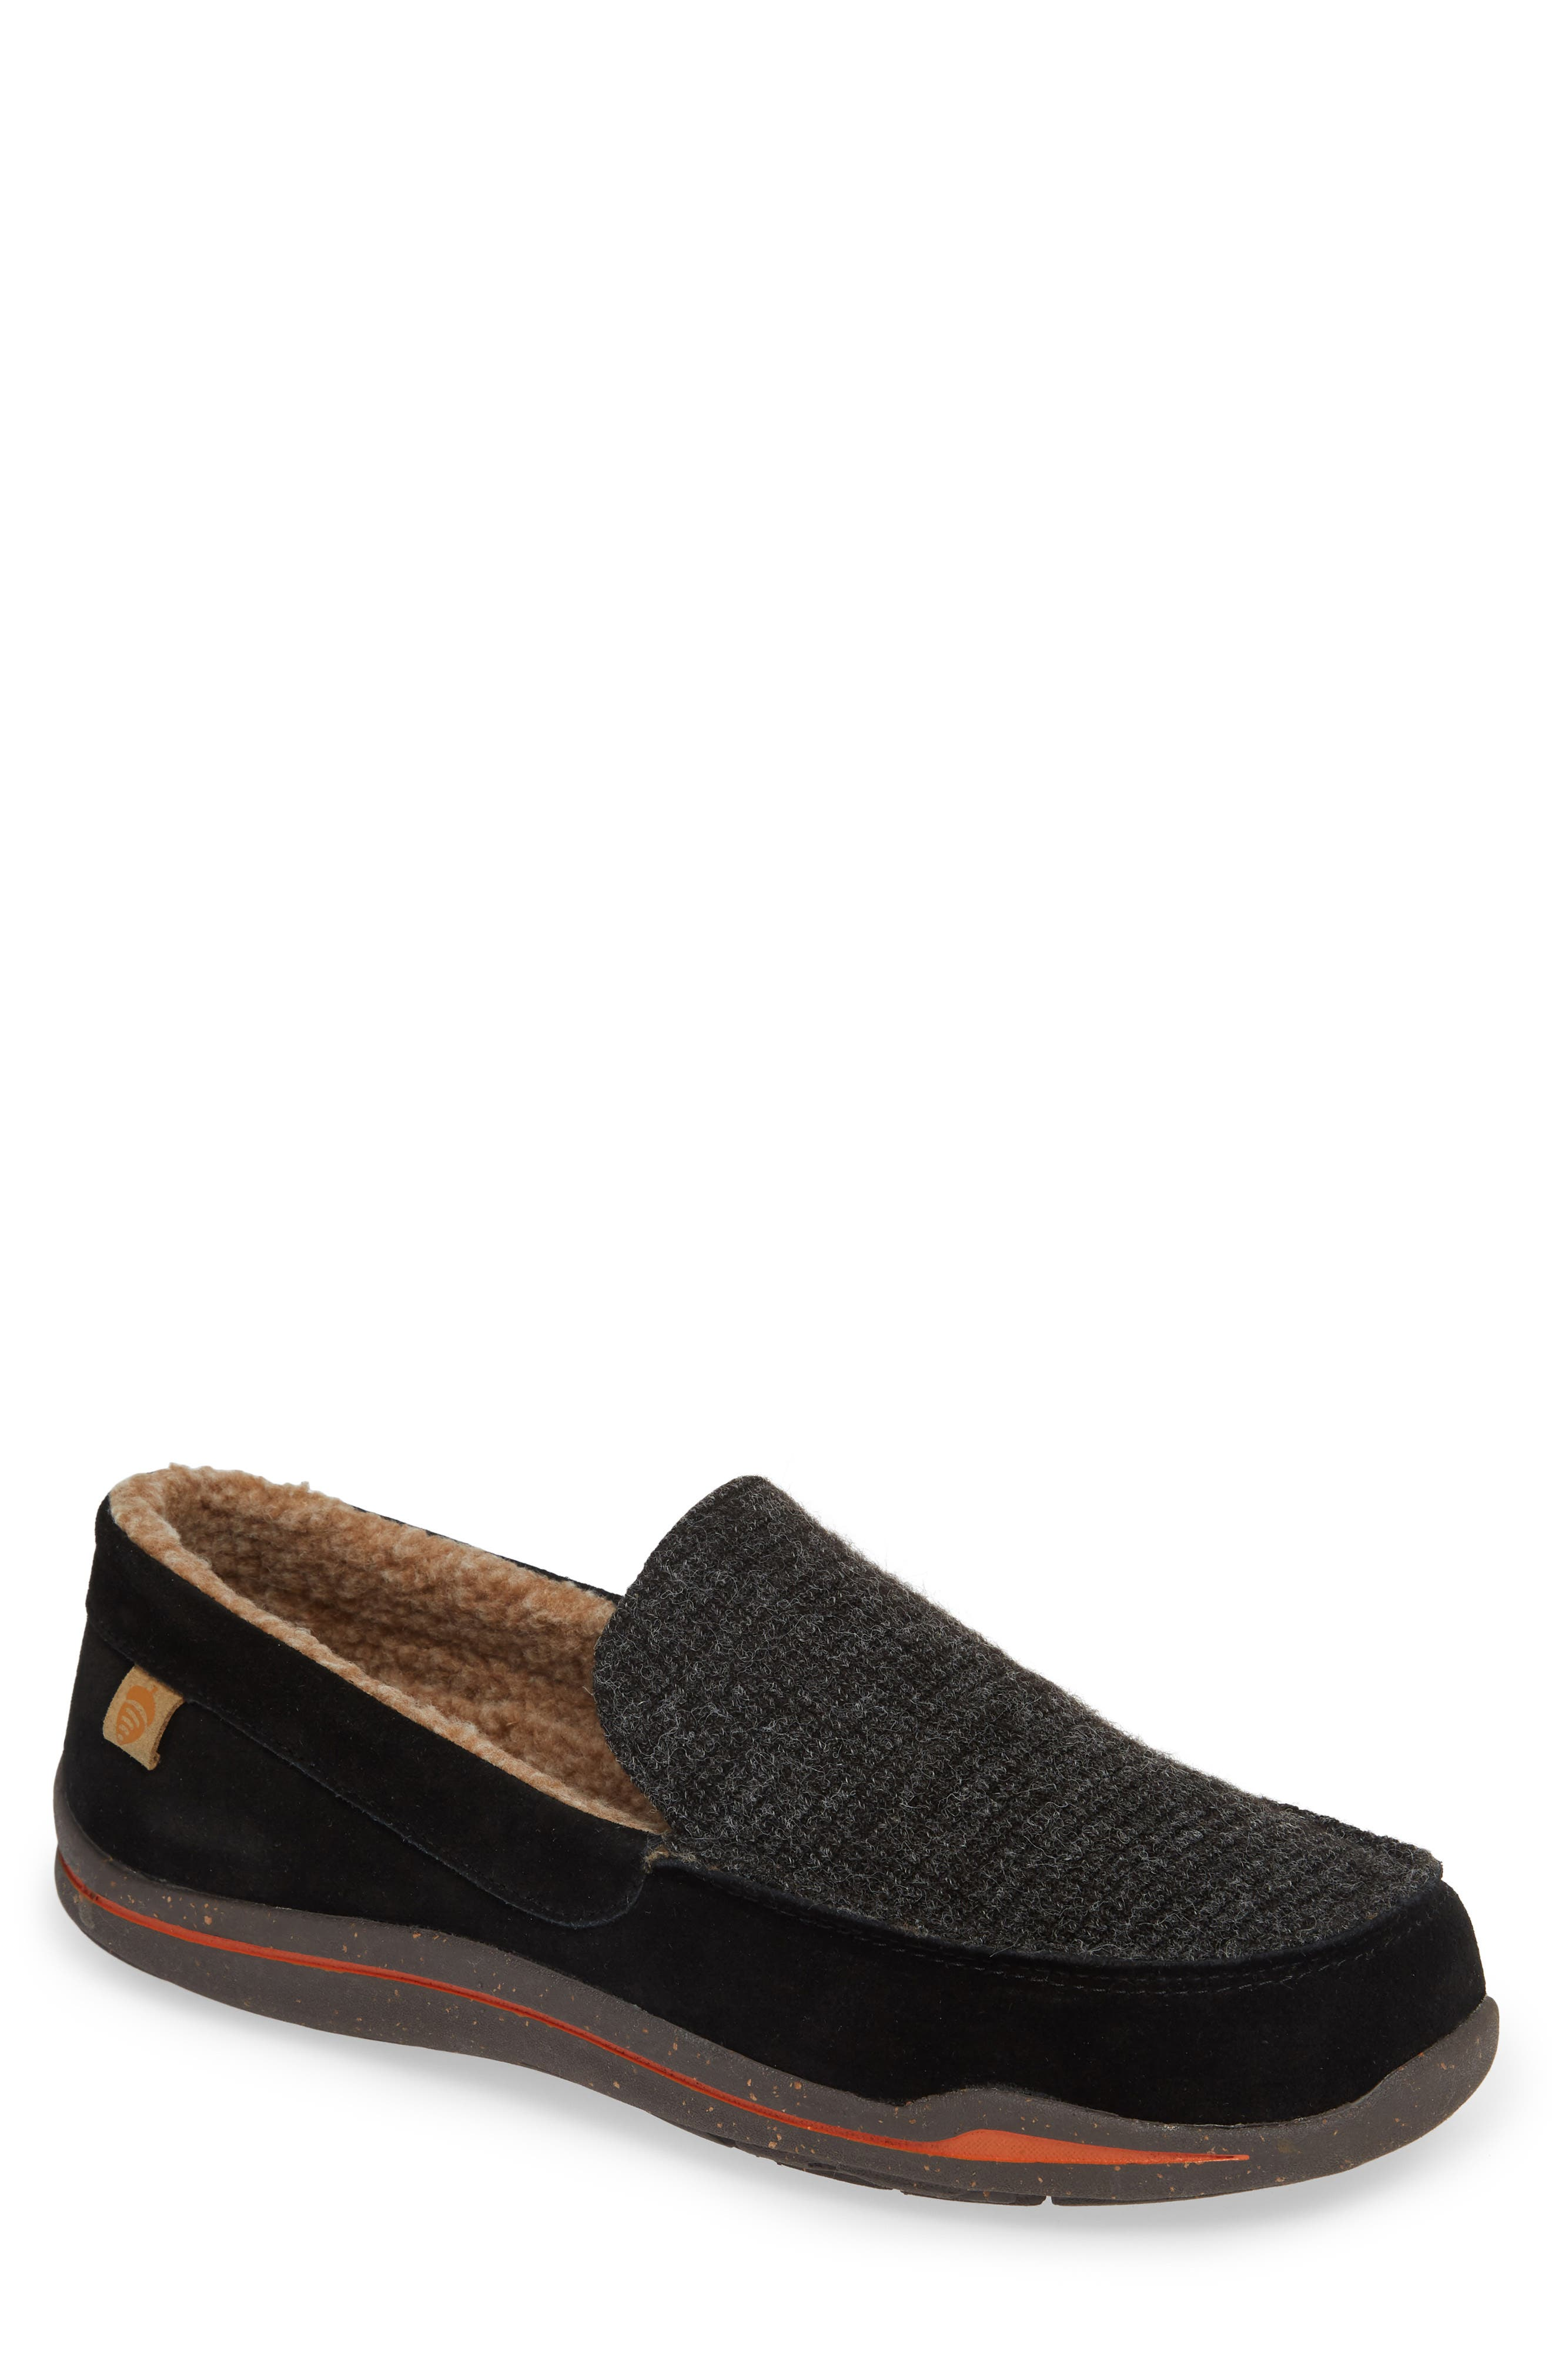 Ellsworth Moc Toe Slipper,                         Main,                         color, BLACK